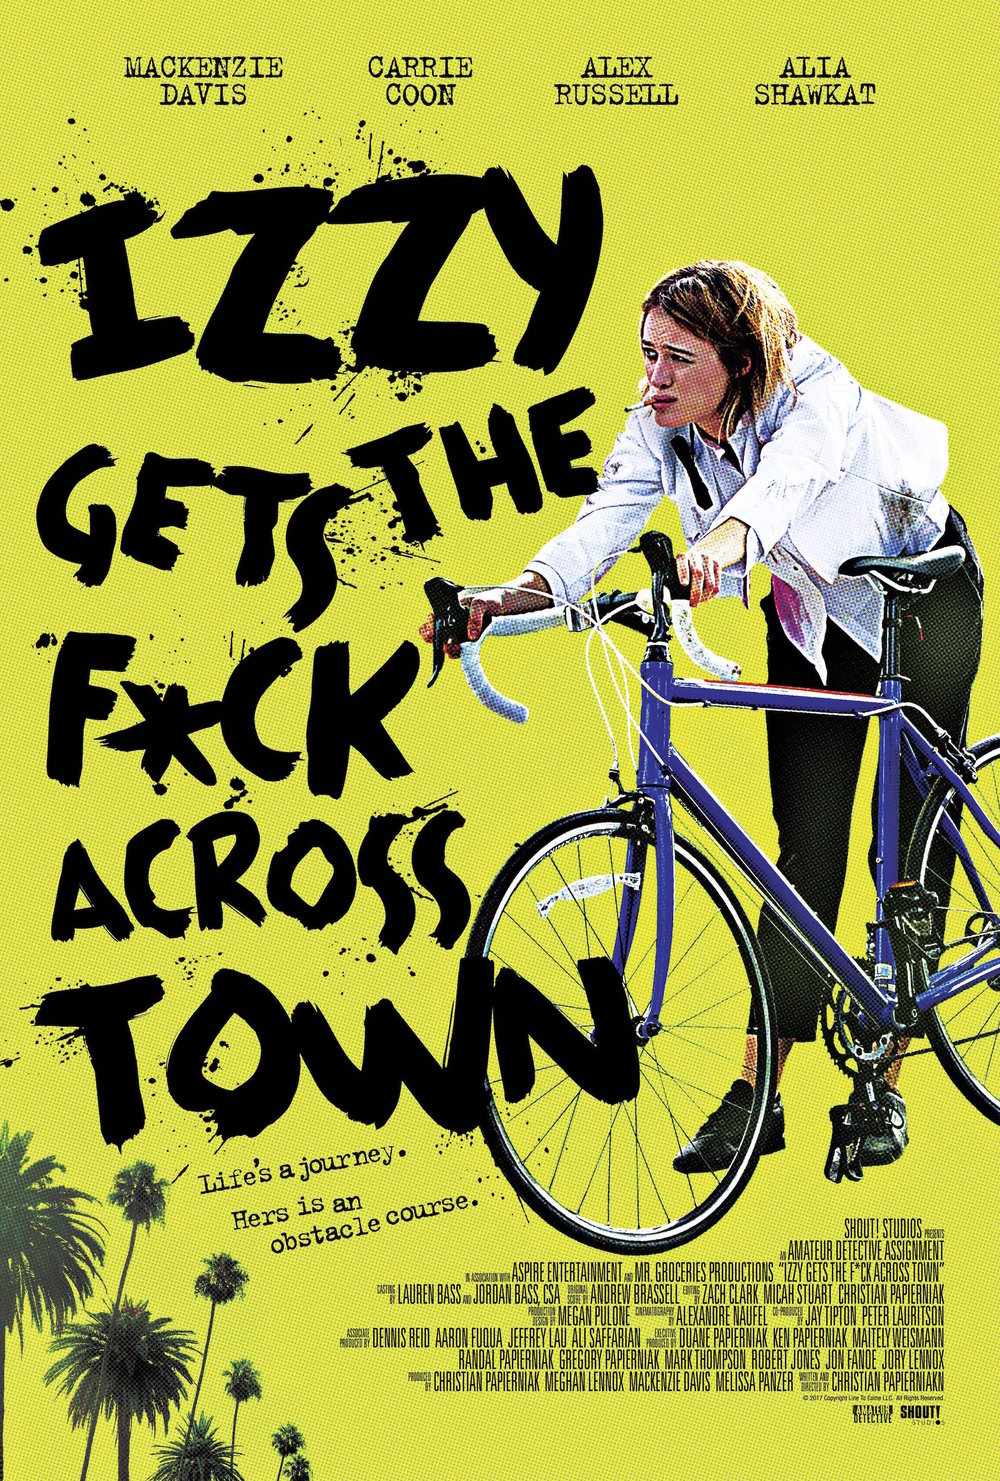 IZZY GETS THE F* ACROSS TOWN